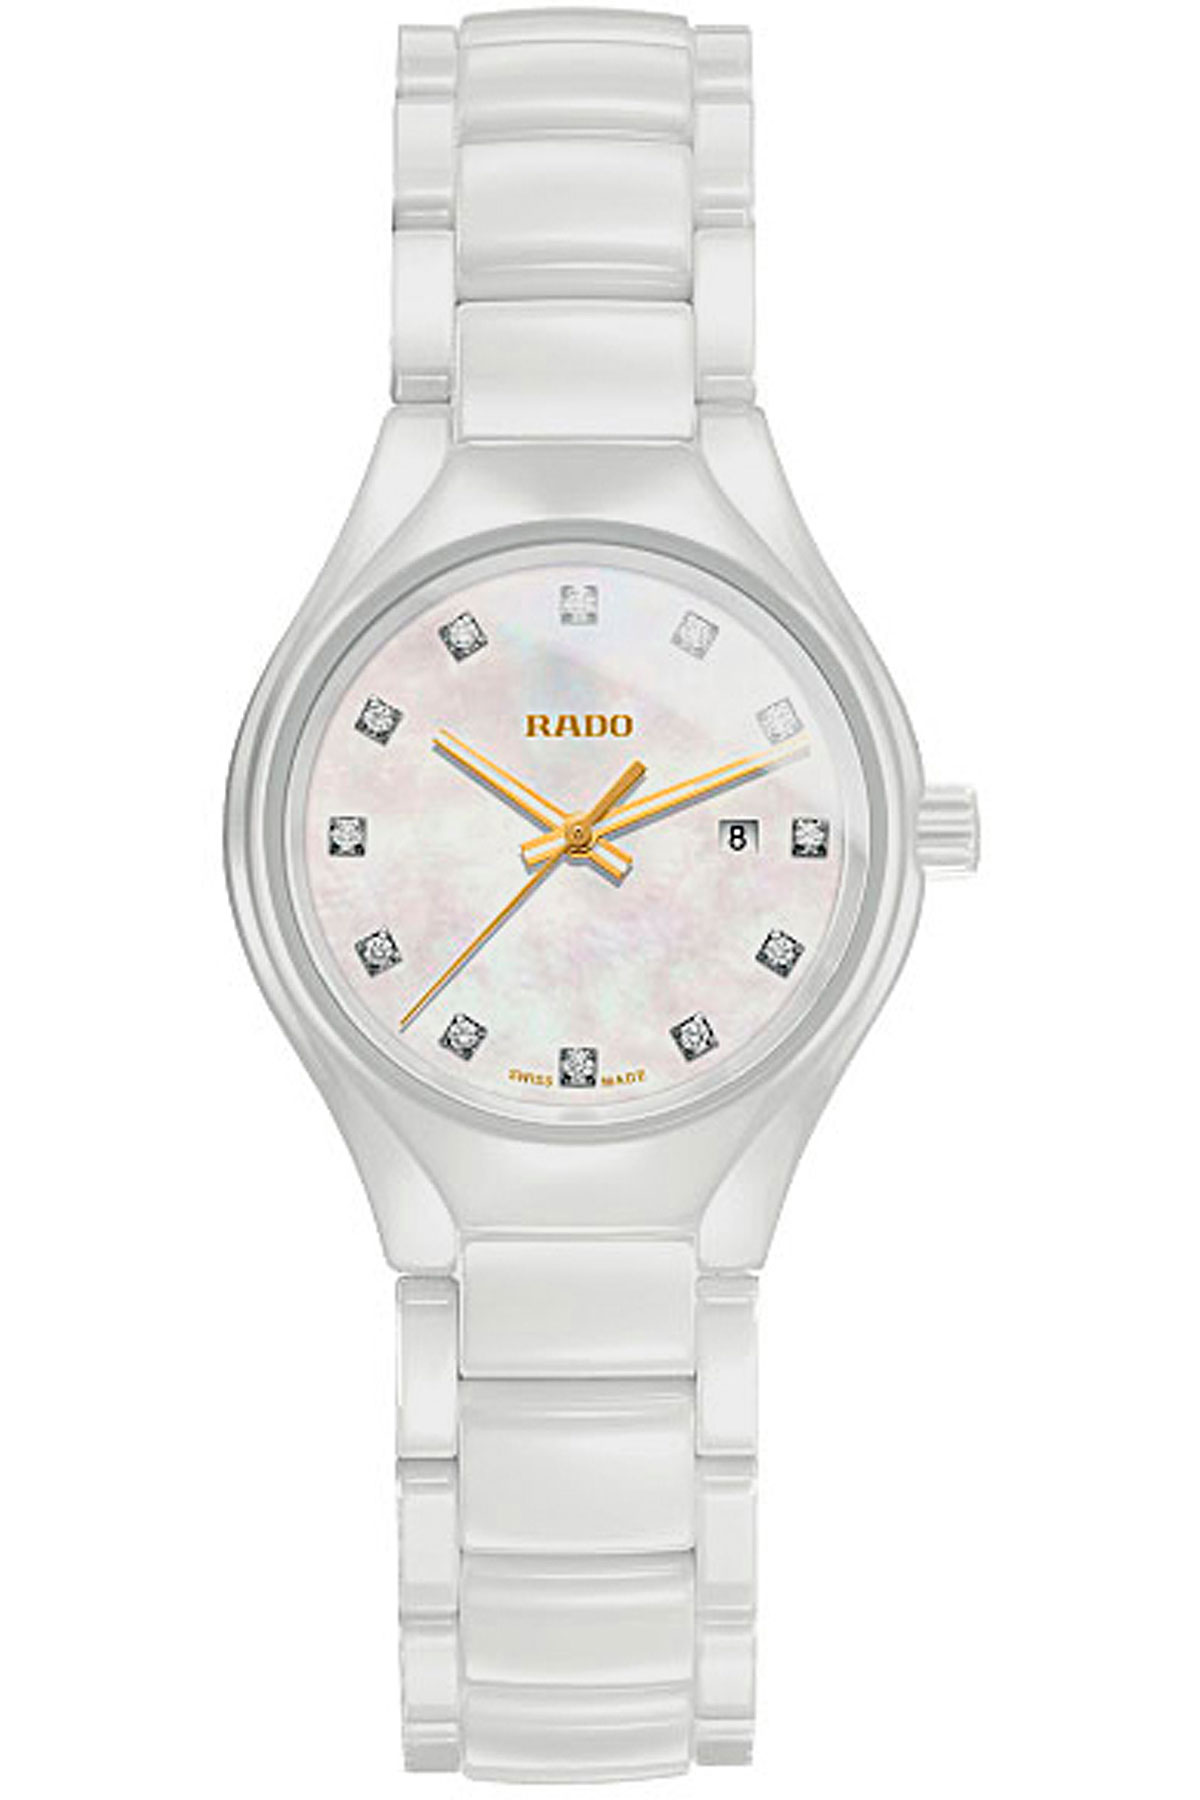 Rado Watch for Women, White, High-Tech Ceramic, 2019